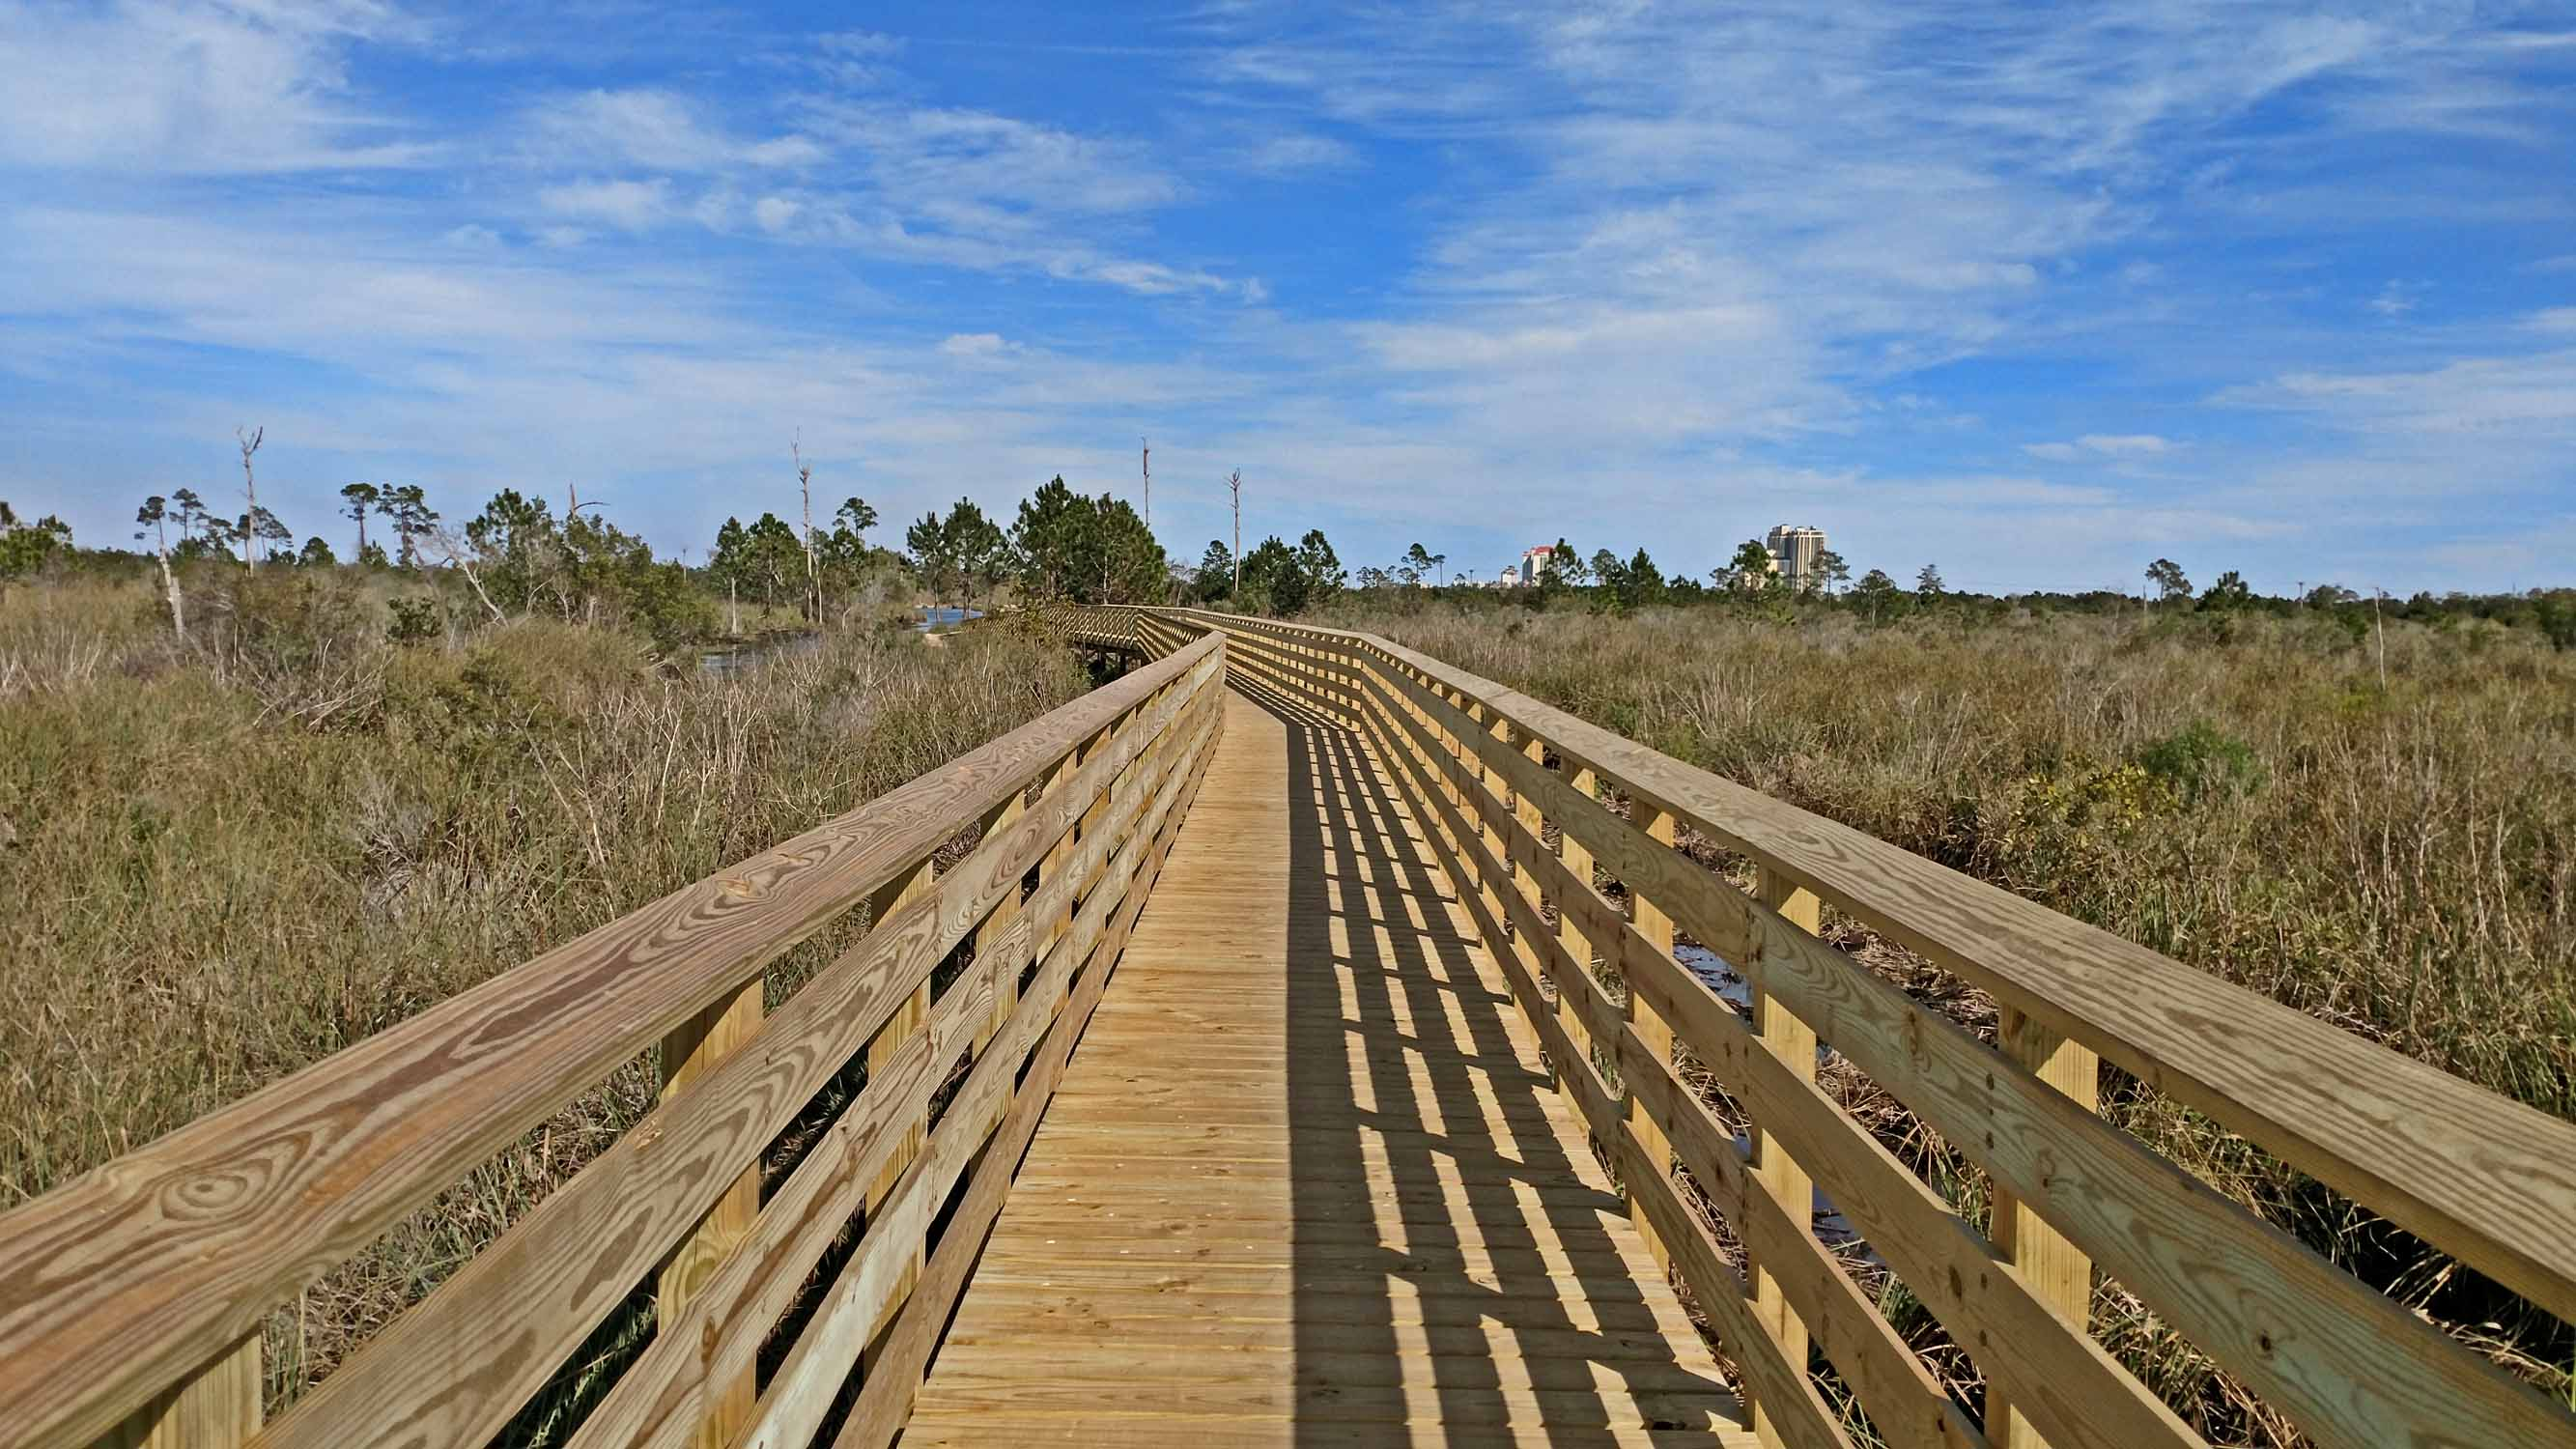 The trail system includes many bridges through the wetlands where you can get up close and personal with the wild life